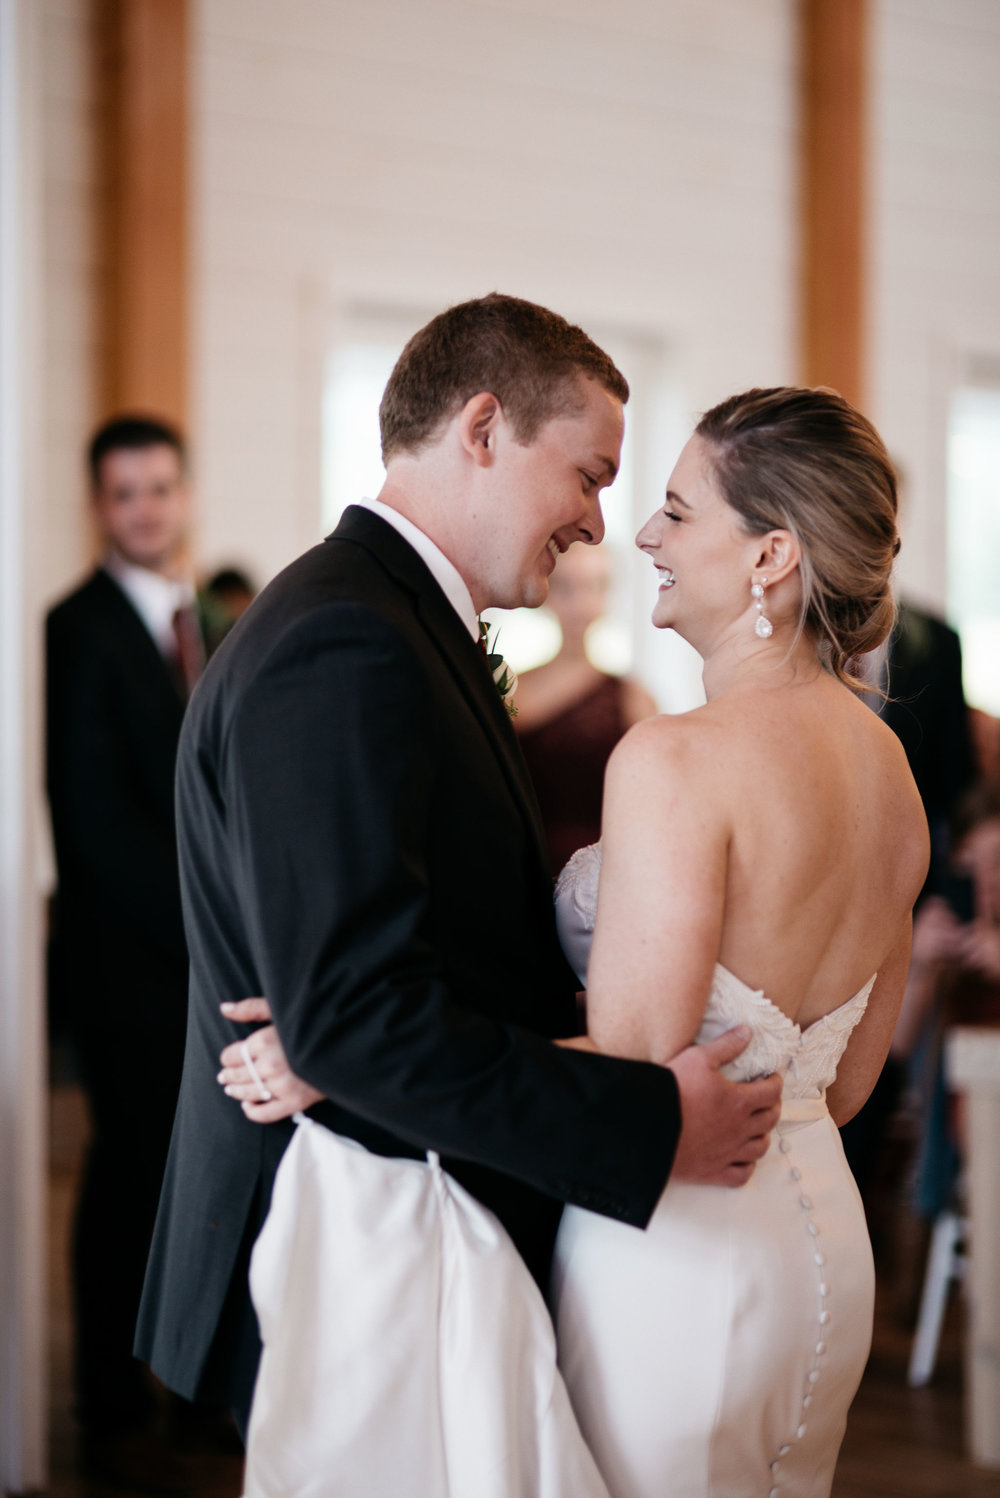 savagewedding-1139.jpg